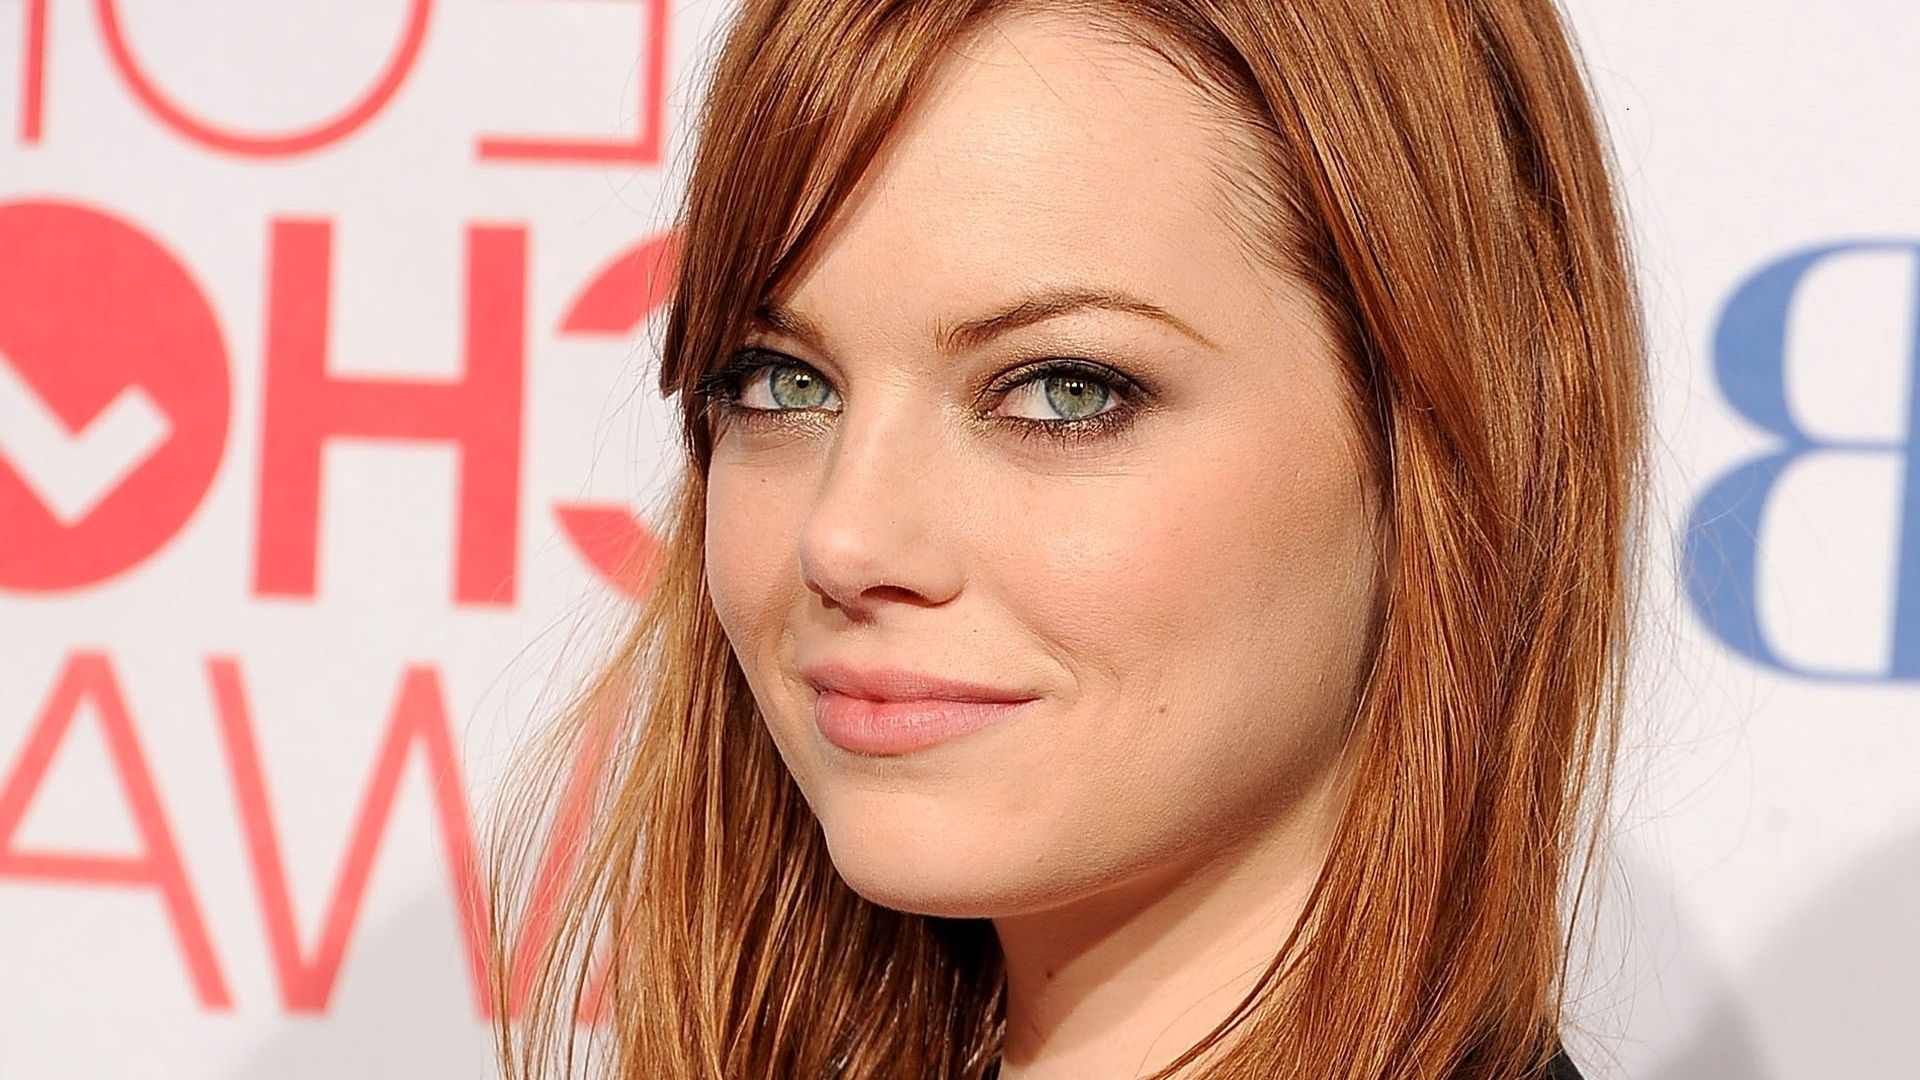 Download Full HD Hollywood Actress Wallpapers